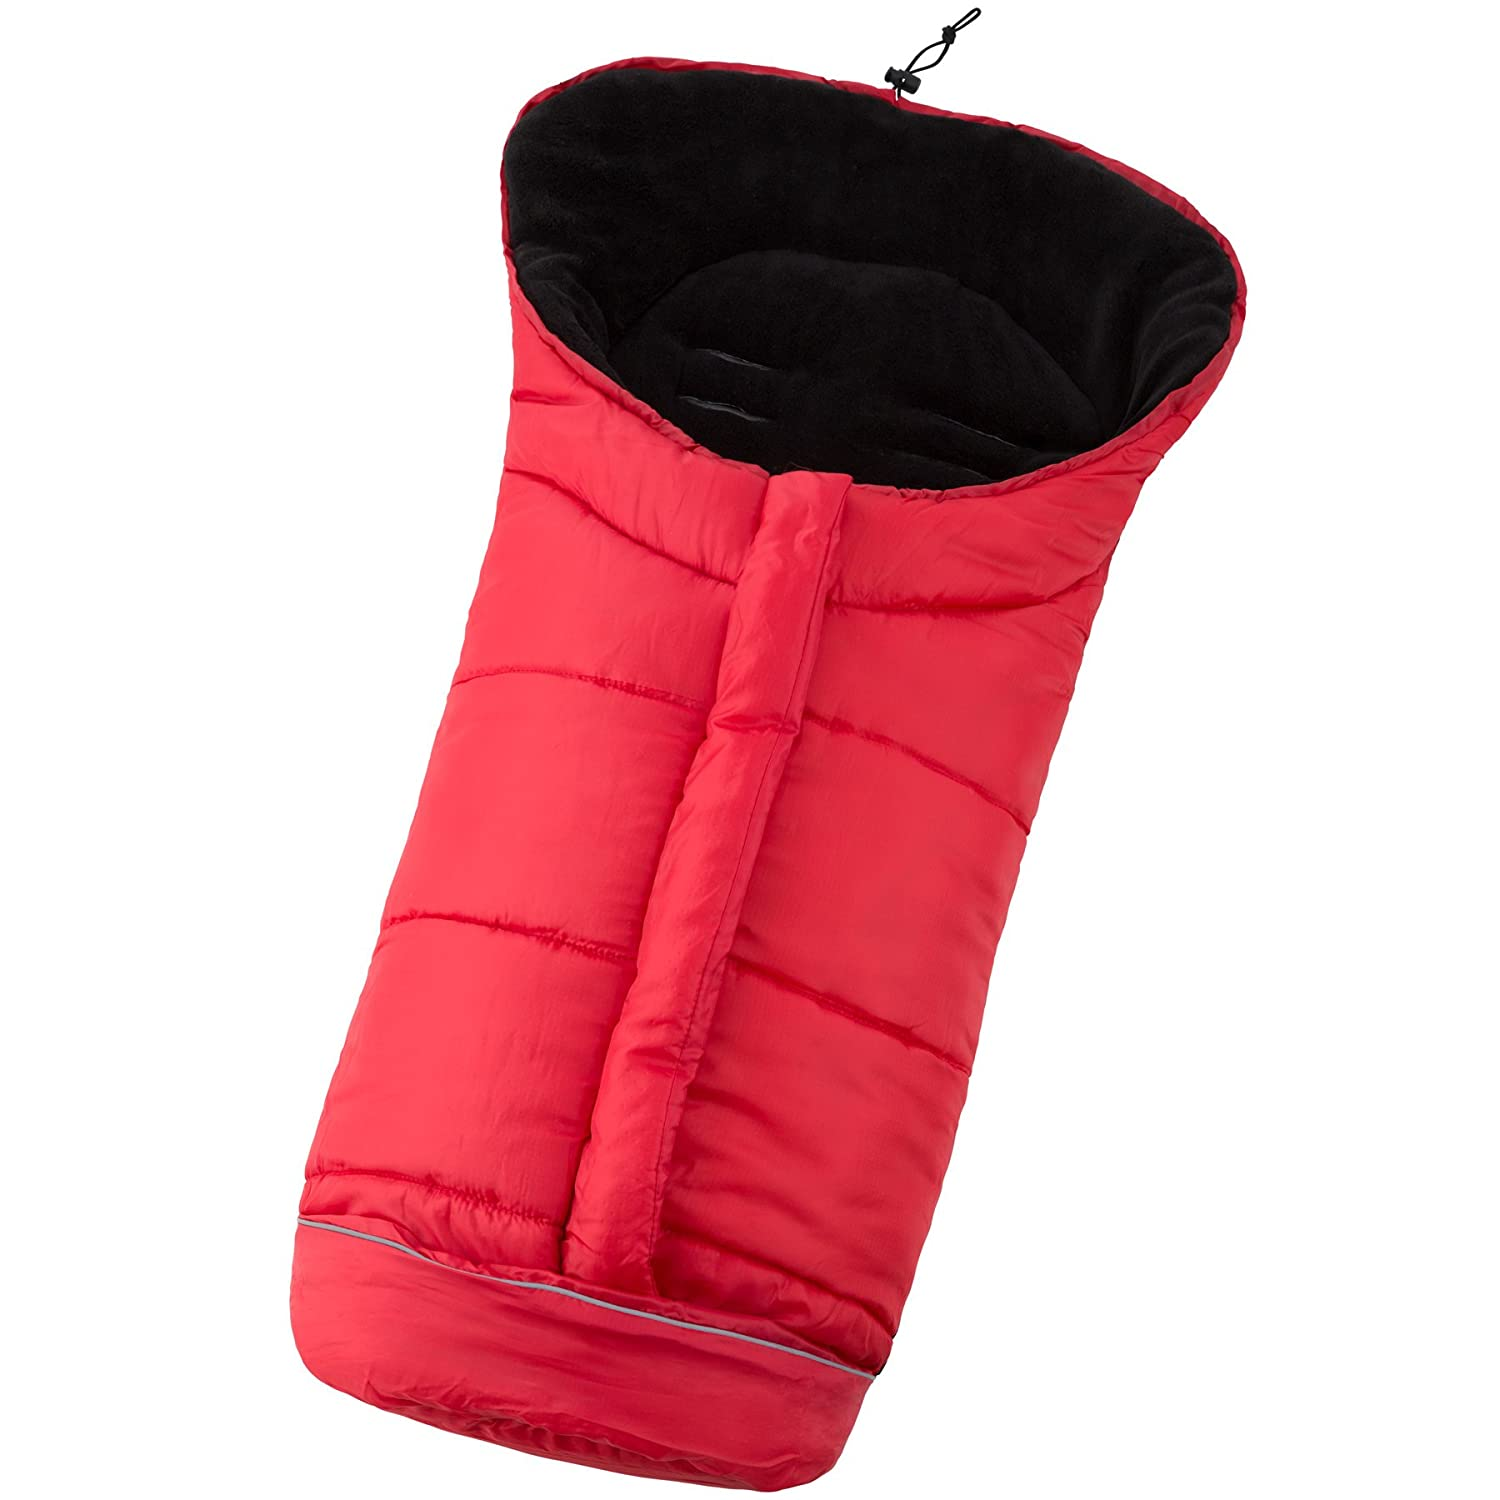 Baby Pushchair Footmuff Warm Toe Cover Winter Windproof Warmth Sleeping Bag Windproof Warm Thermal Lining Baby Socks 2019 New Fashion Style Online Activity & Gear Mother & Kids